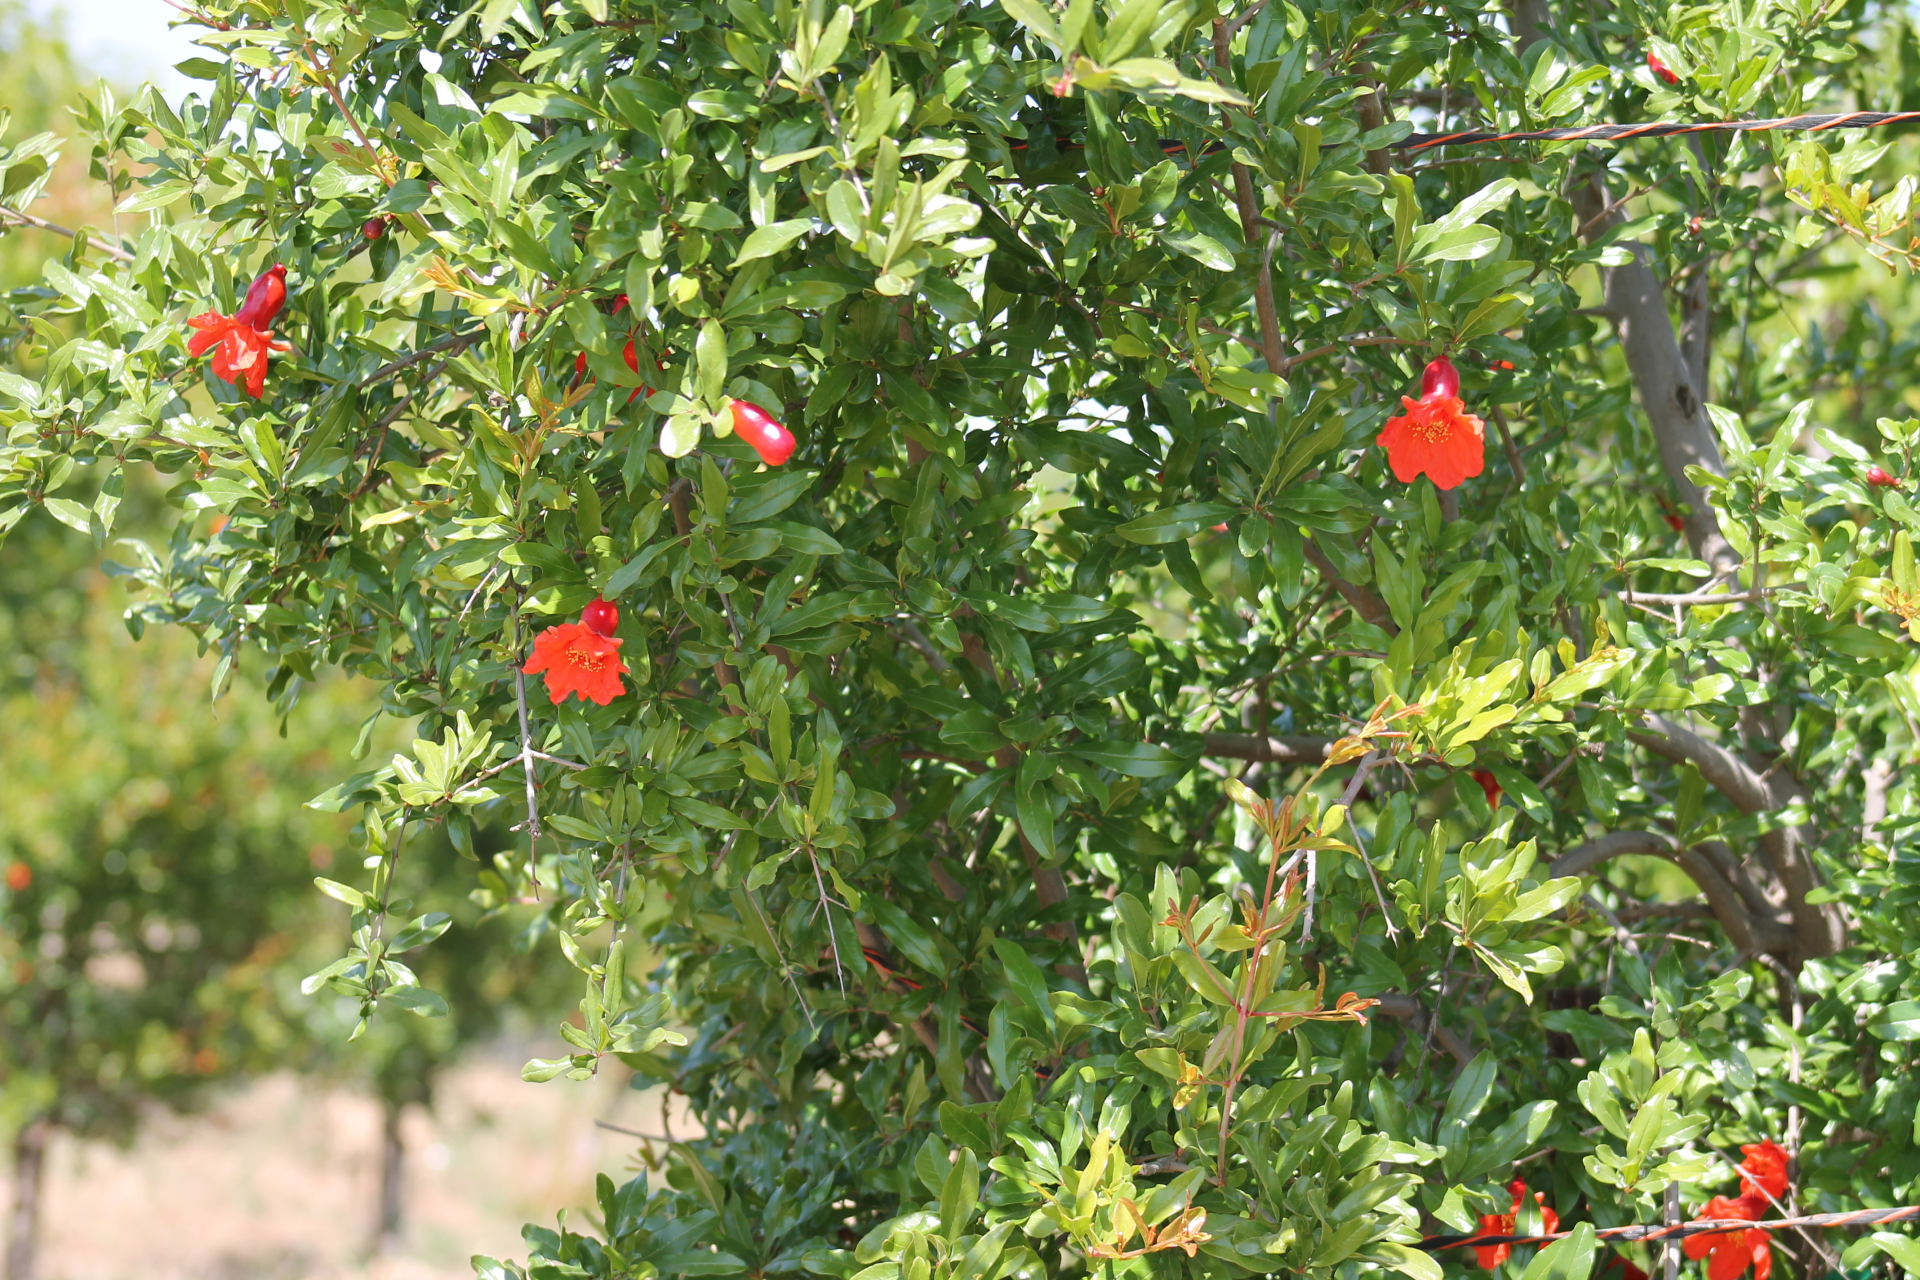 Pomegranate tree with blooms